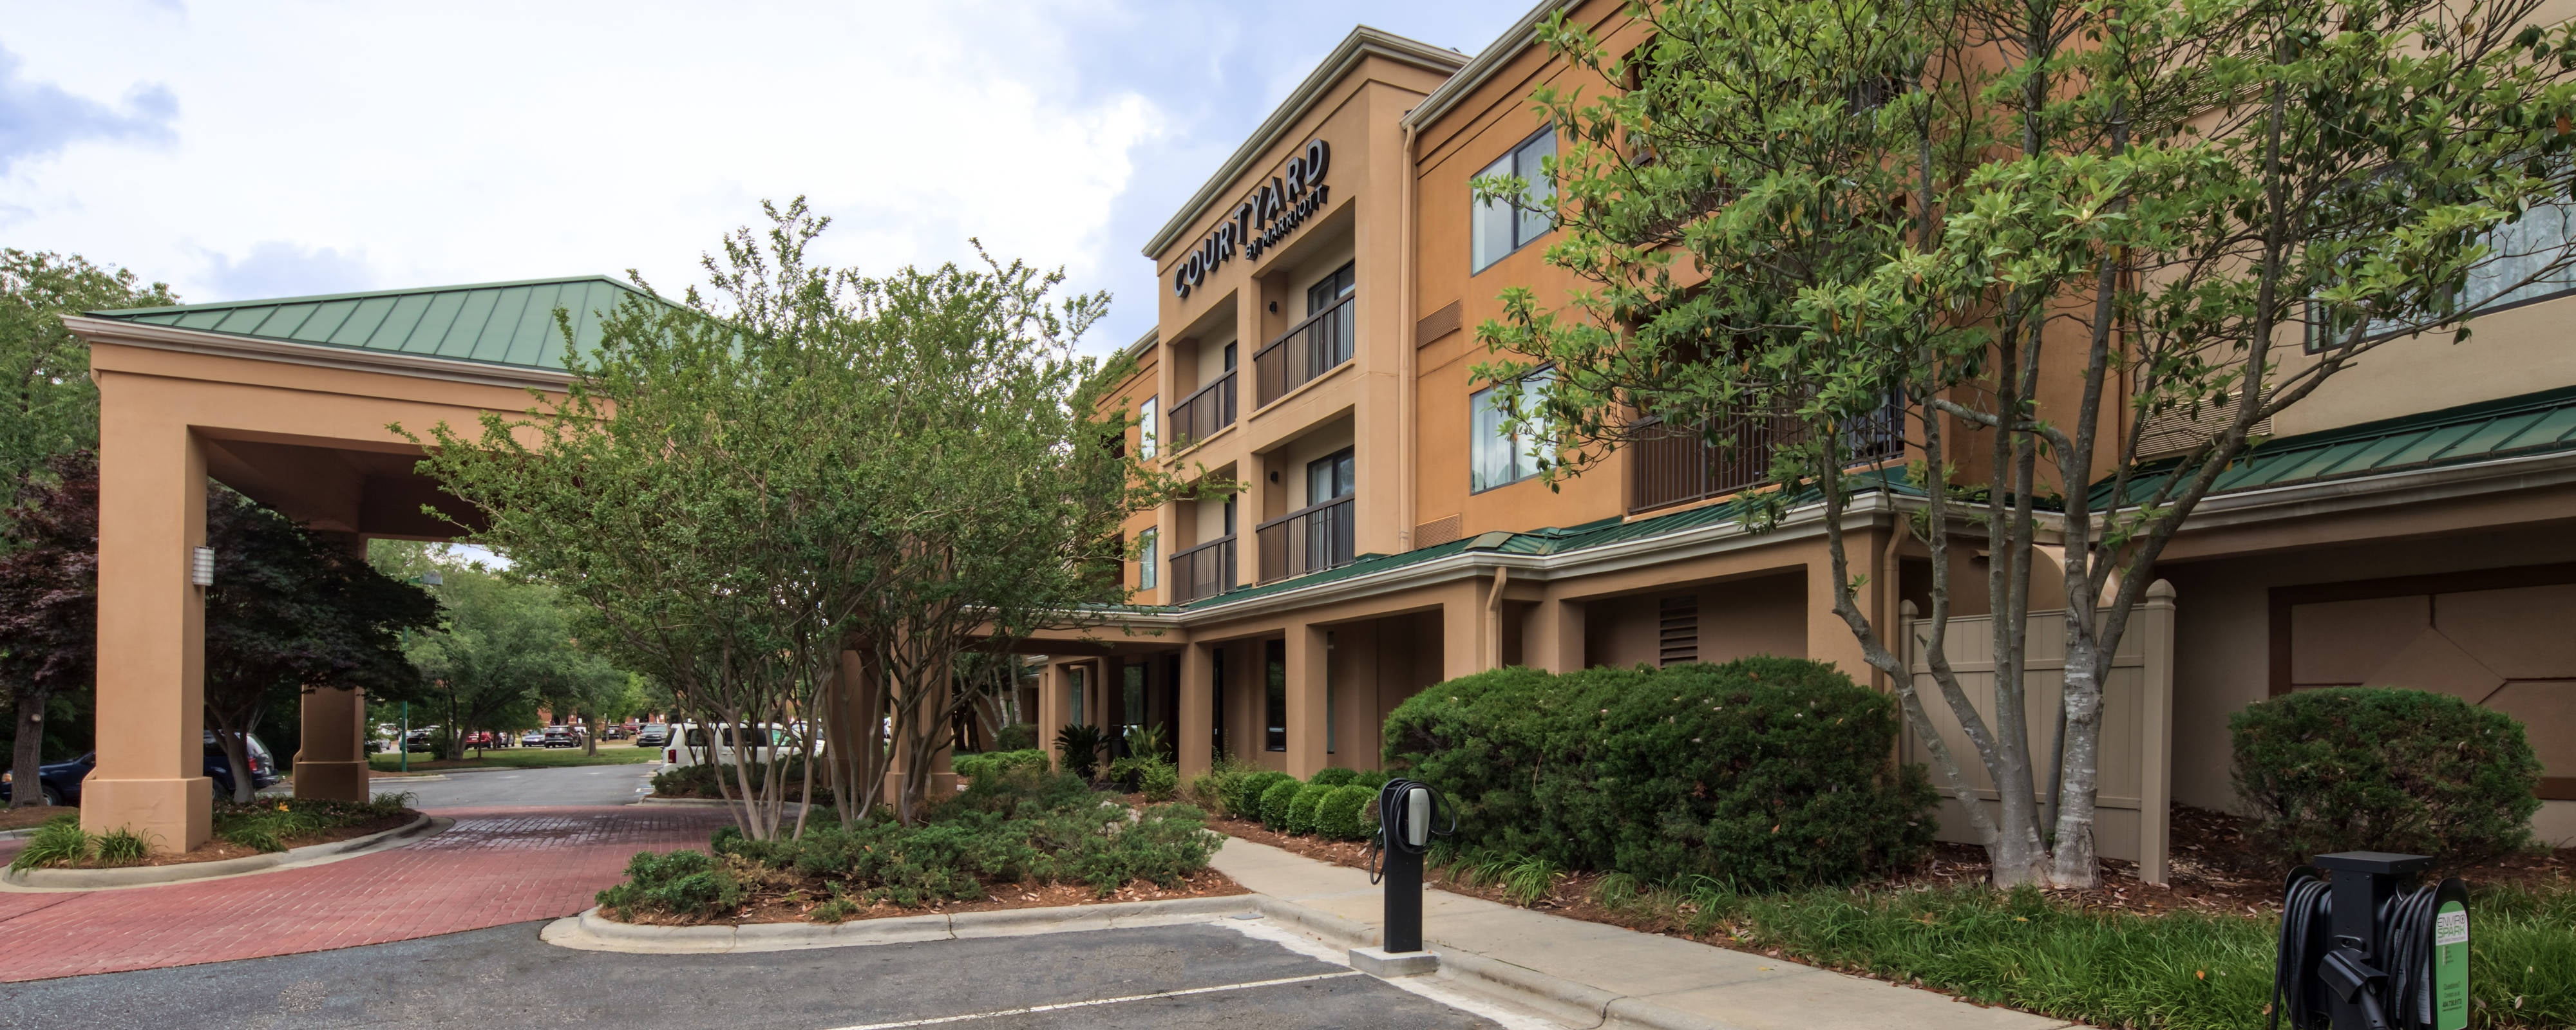 Hotels in Rock Hill, SC near Fort Mill | Courtyard Rock Hill